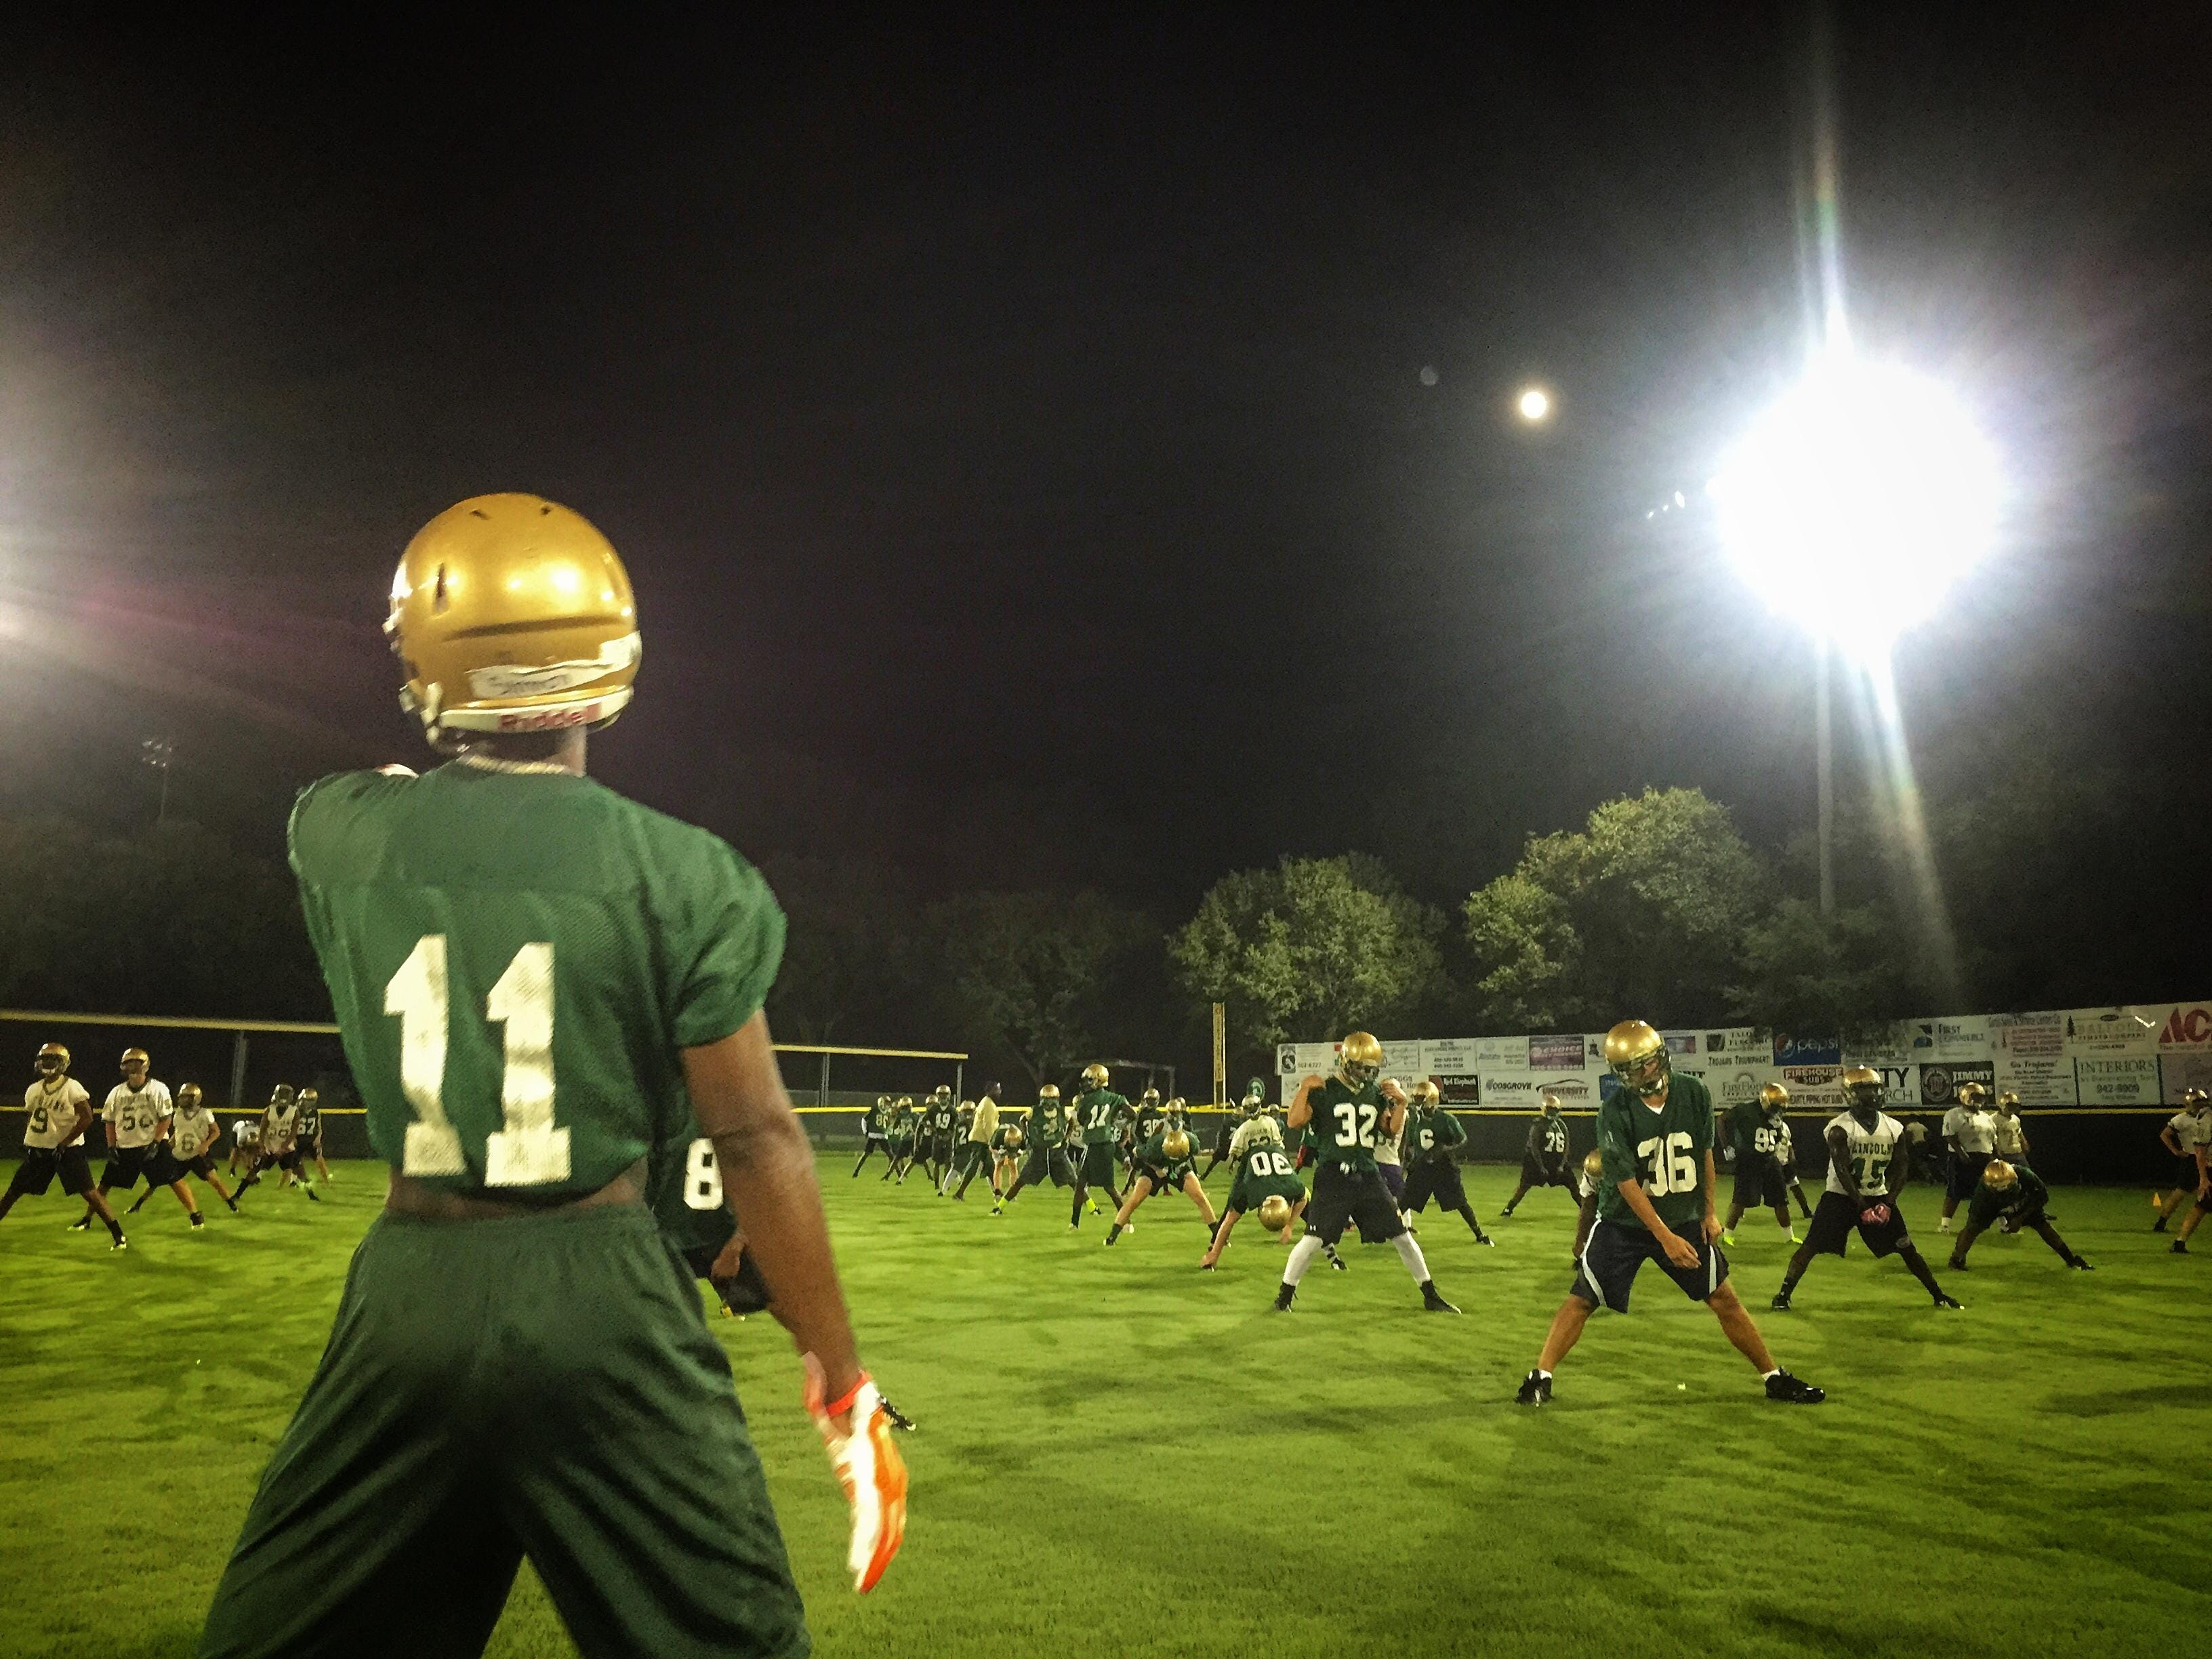 The Lincoln football team participated in Midnight Madness at 12:01 a.m. on Aug. 3, 2015. The tradition was started in 1991 to kick off the fall season.